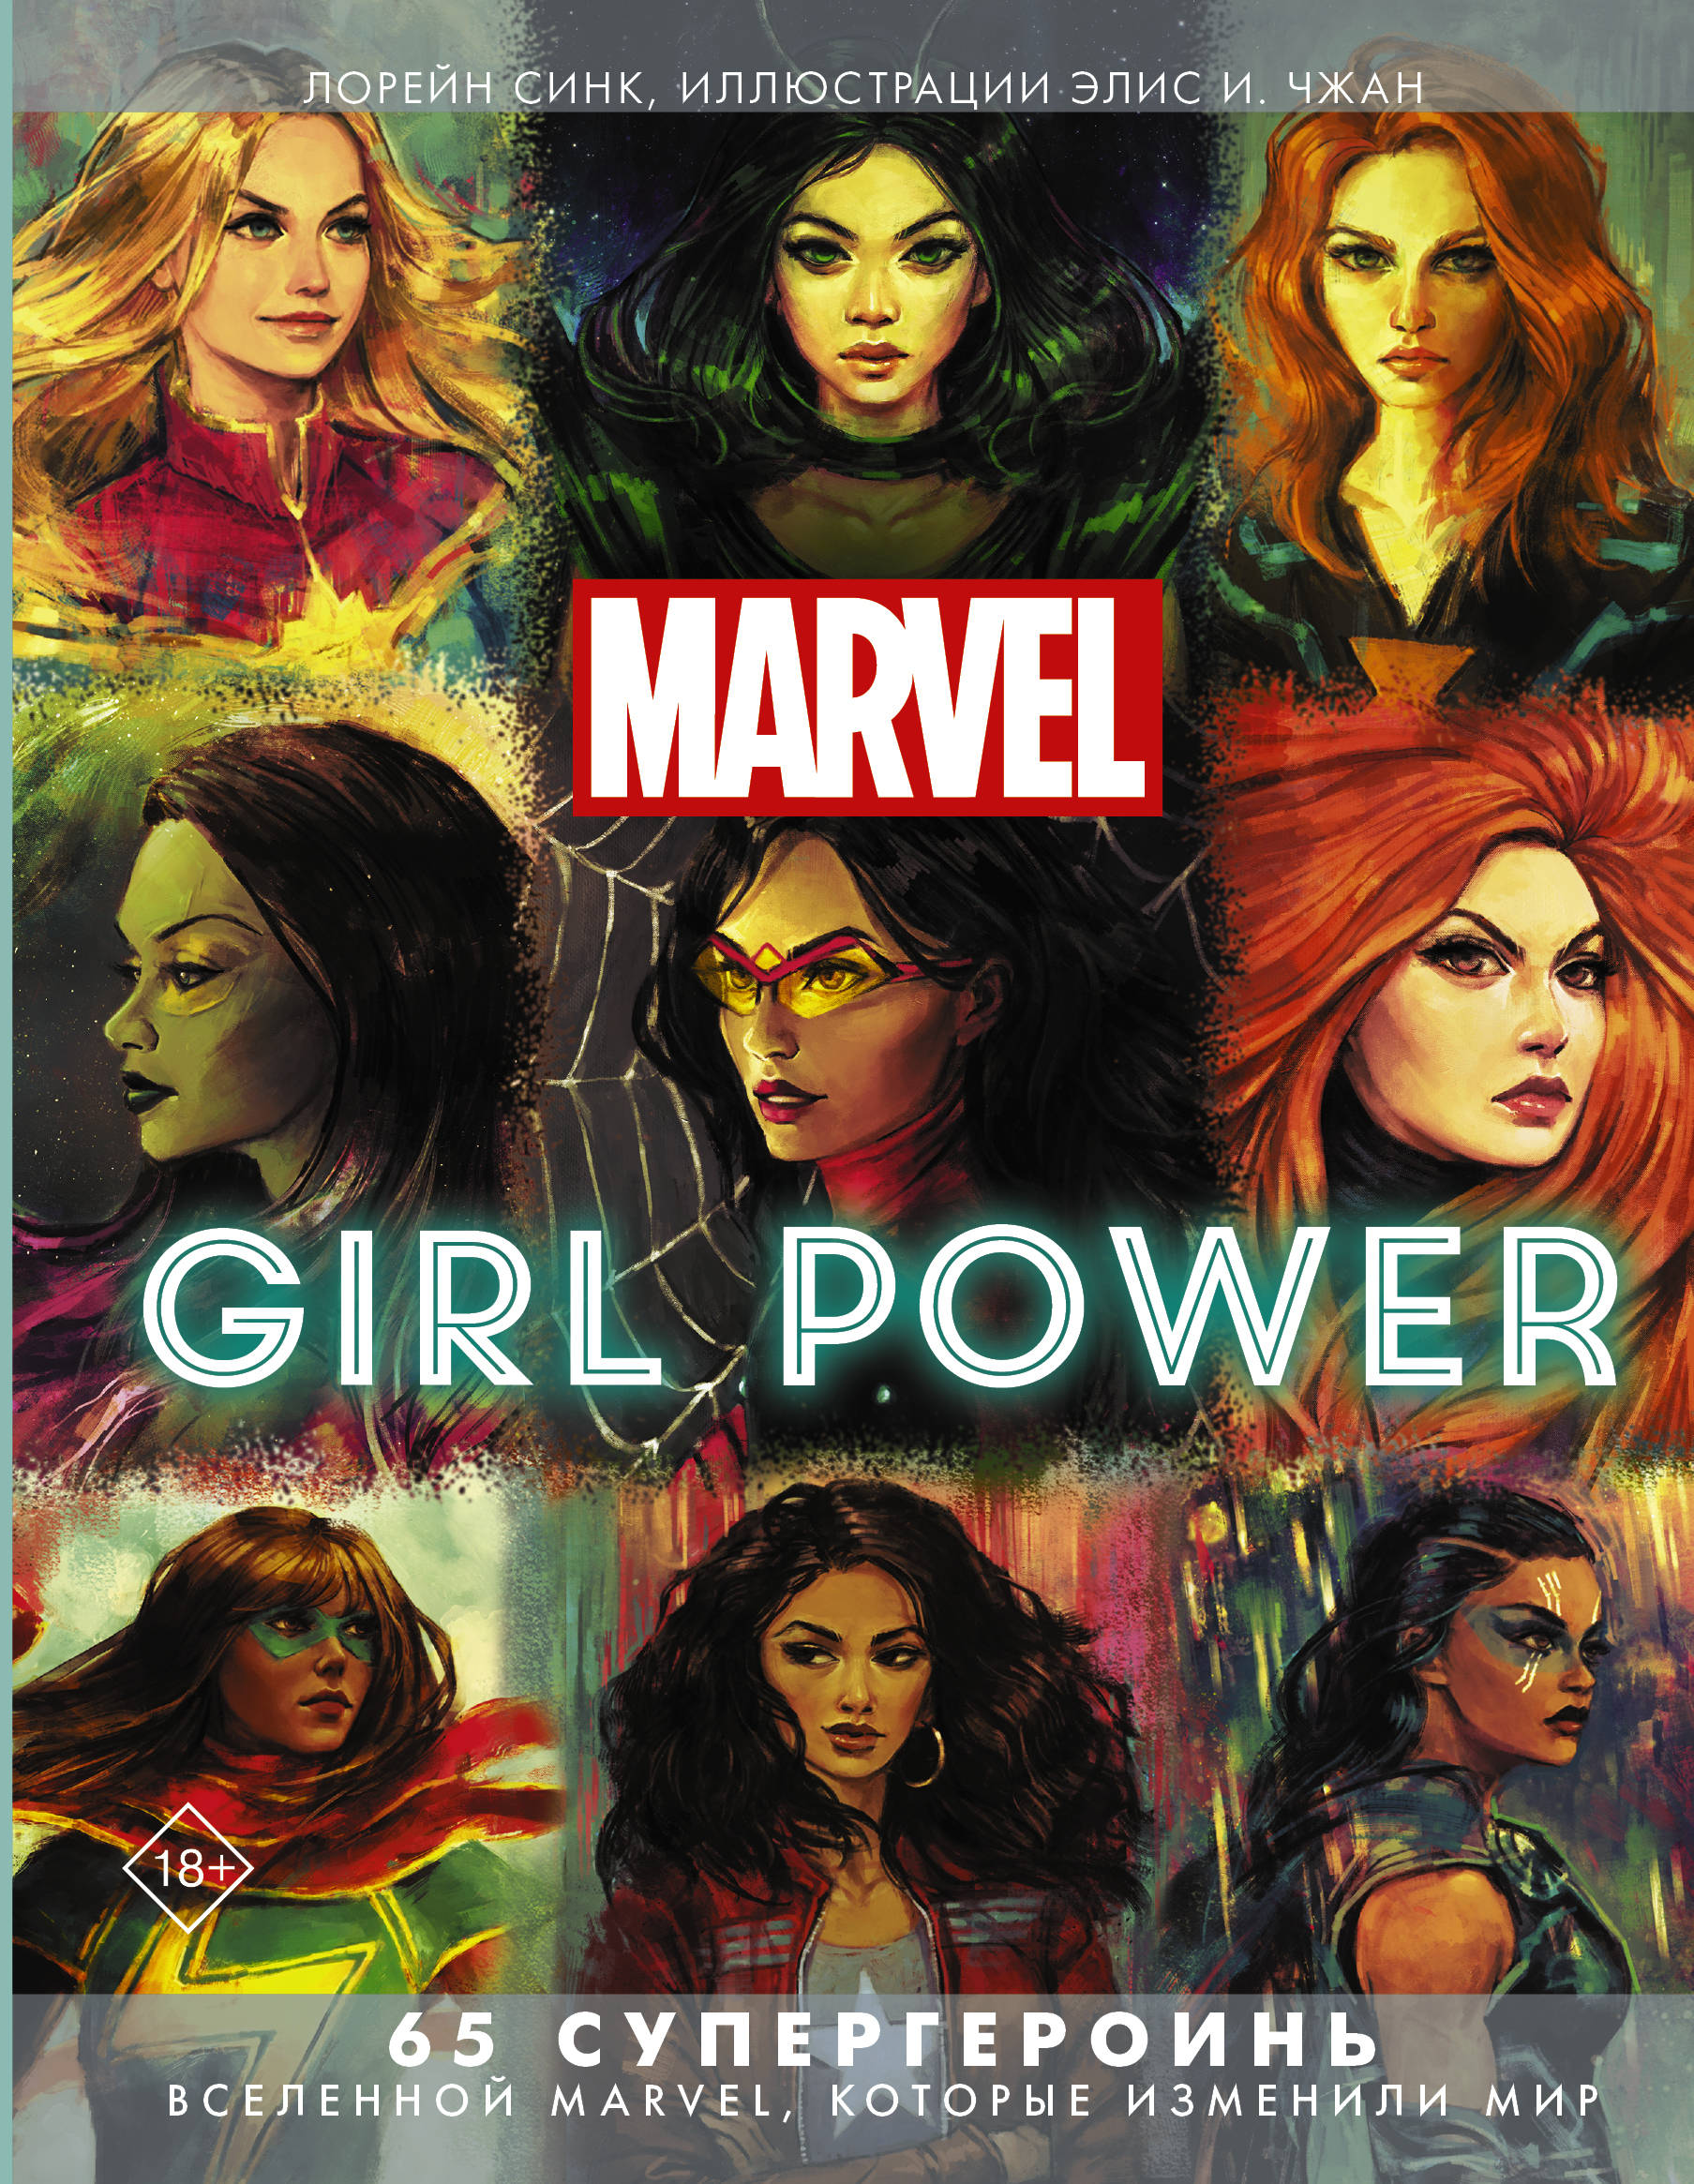 Marvel. Girl Power. 65 supergeroin vselennoj Marvel, kotorye izmenili mir